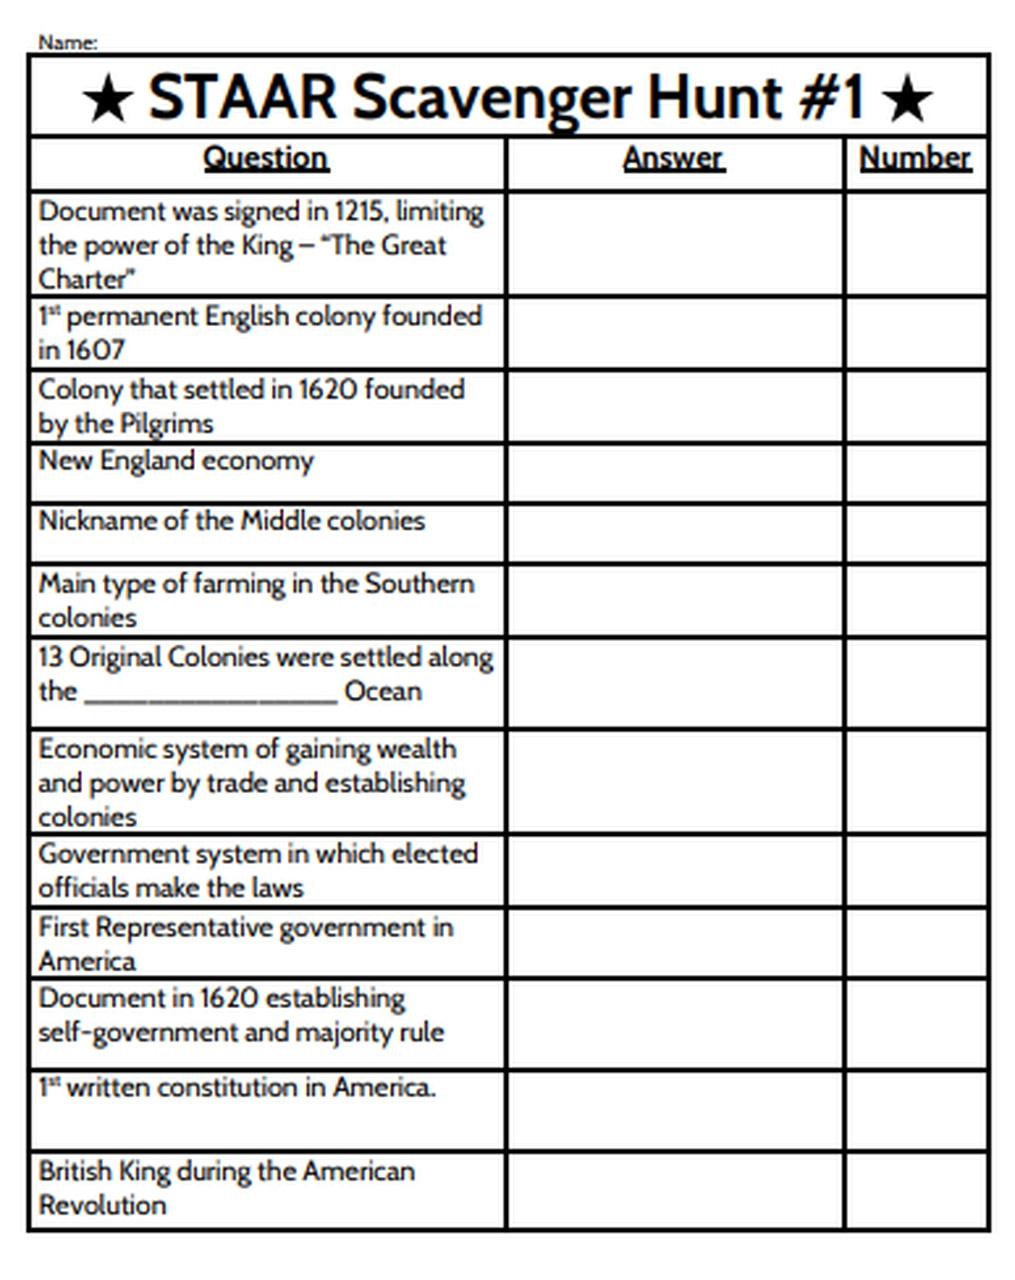 Constitution Scavenger Hunt Worksheet 8th Grade social Stu S Staar Scavenger Hunt Exploration Through Constitution